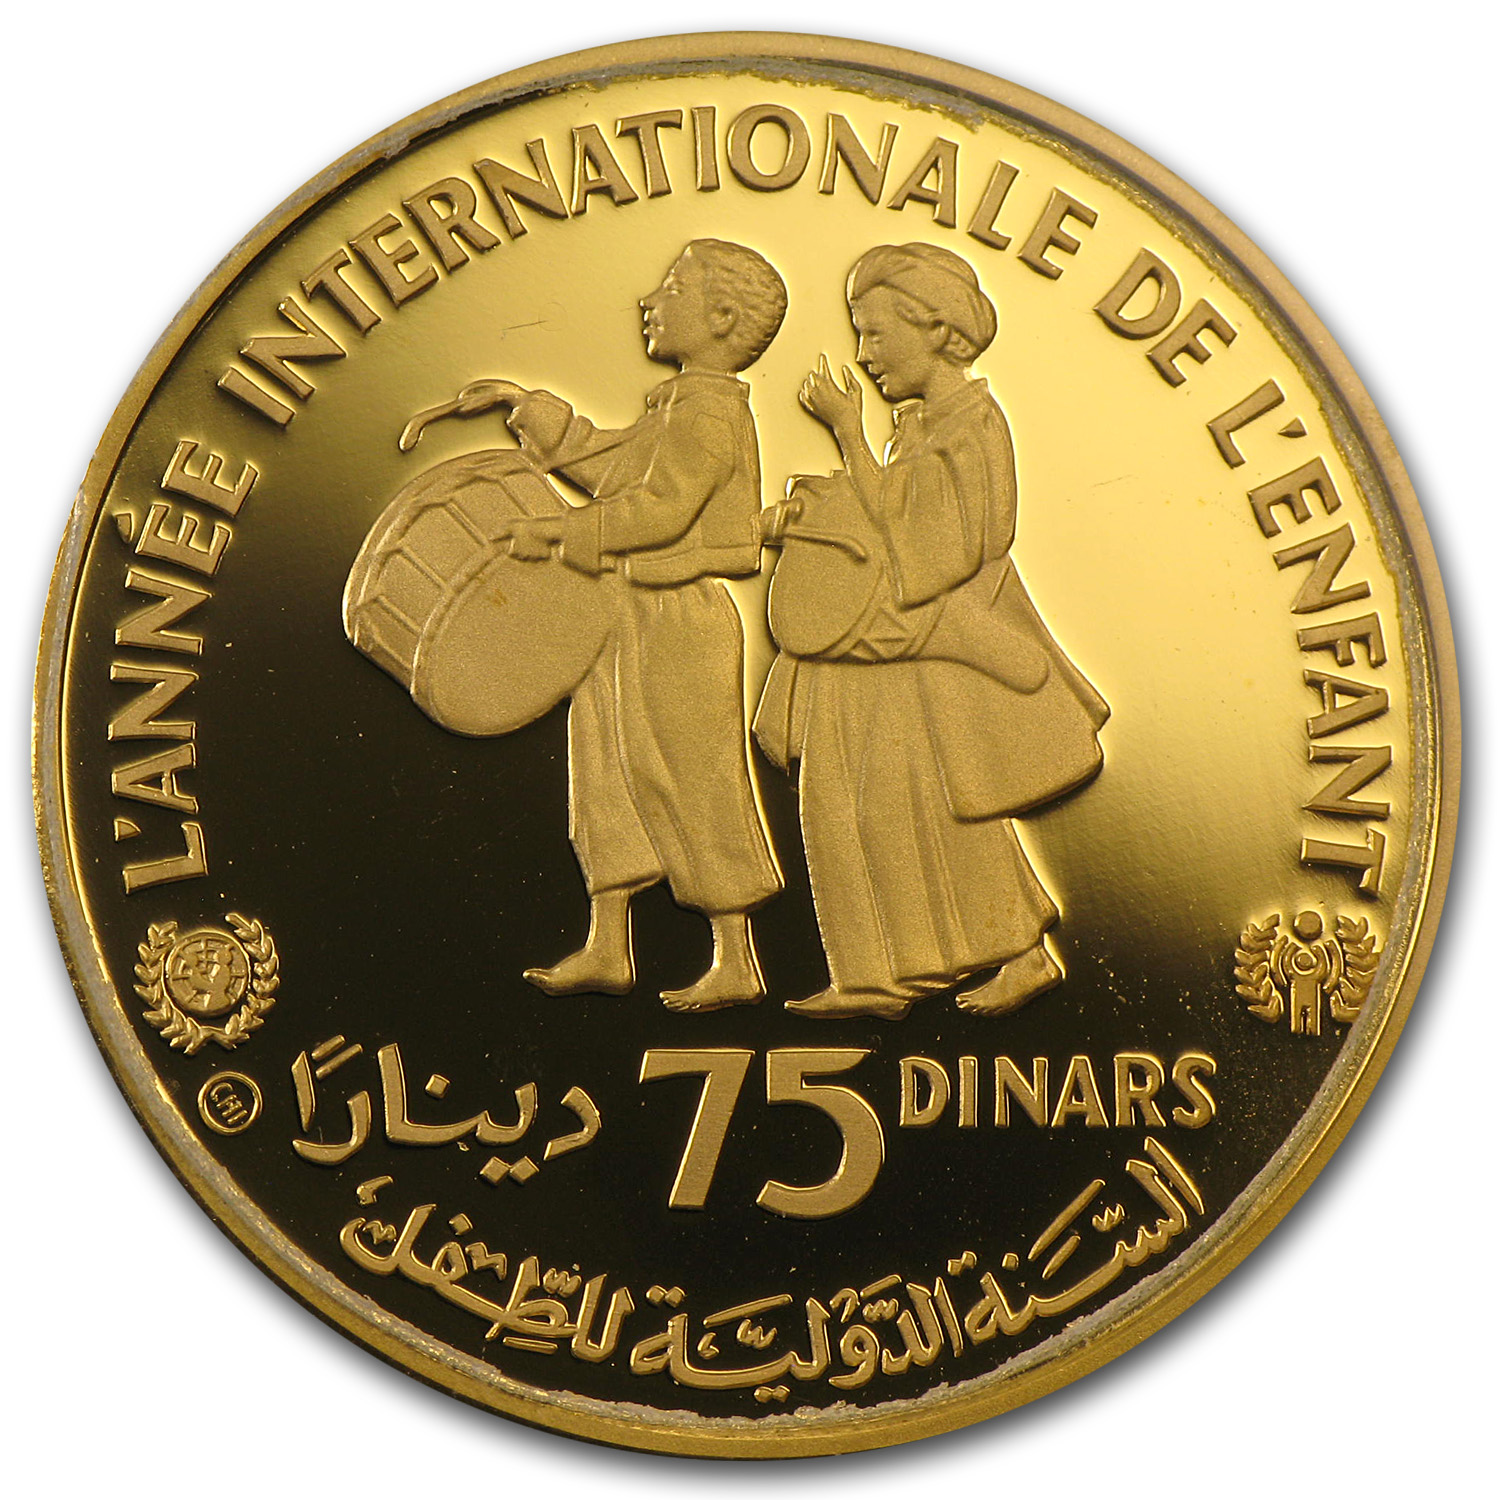 1982 Tunisia Proof Gold 75 Dinars International Year of the Child